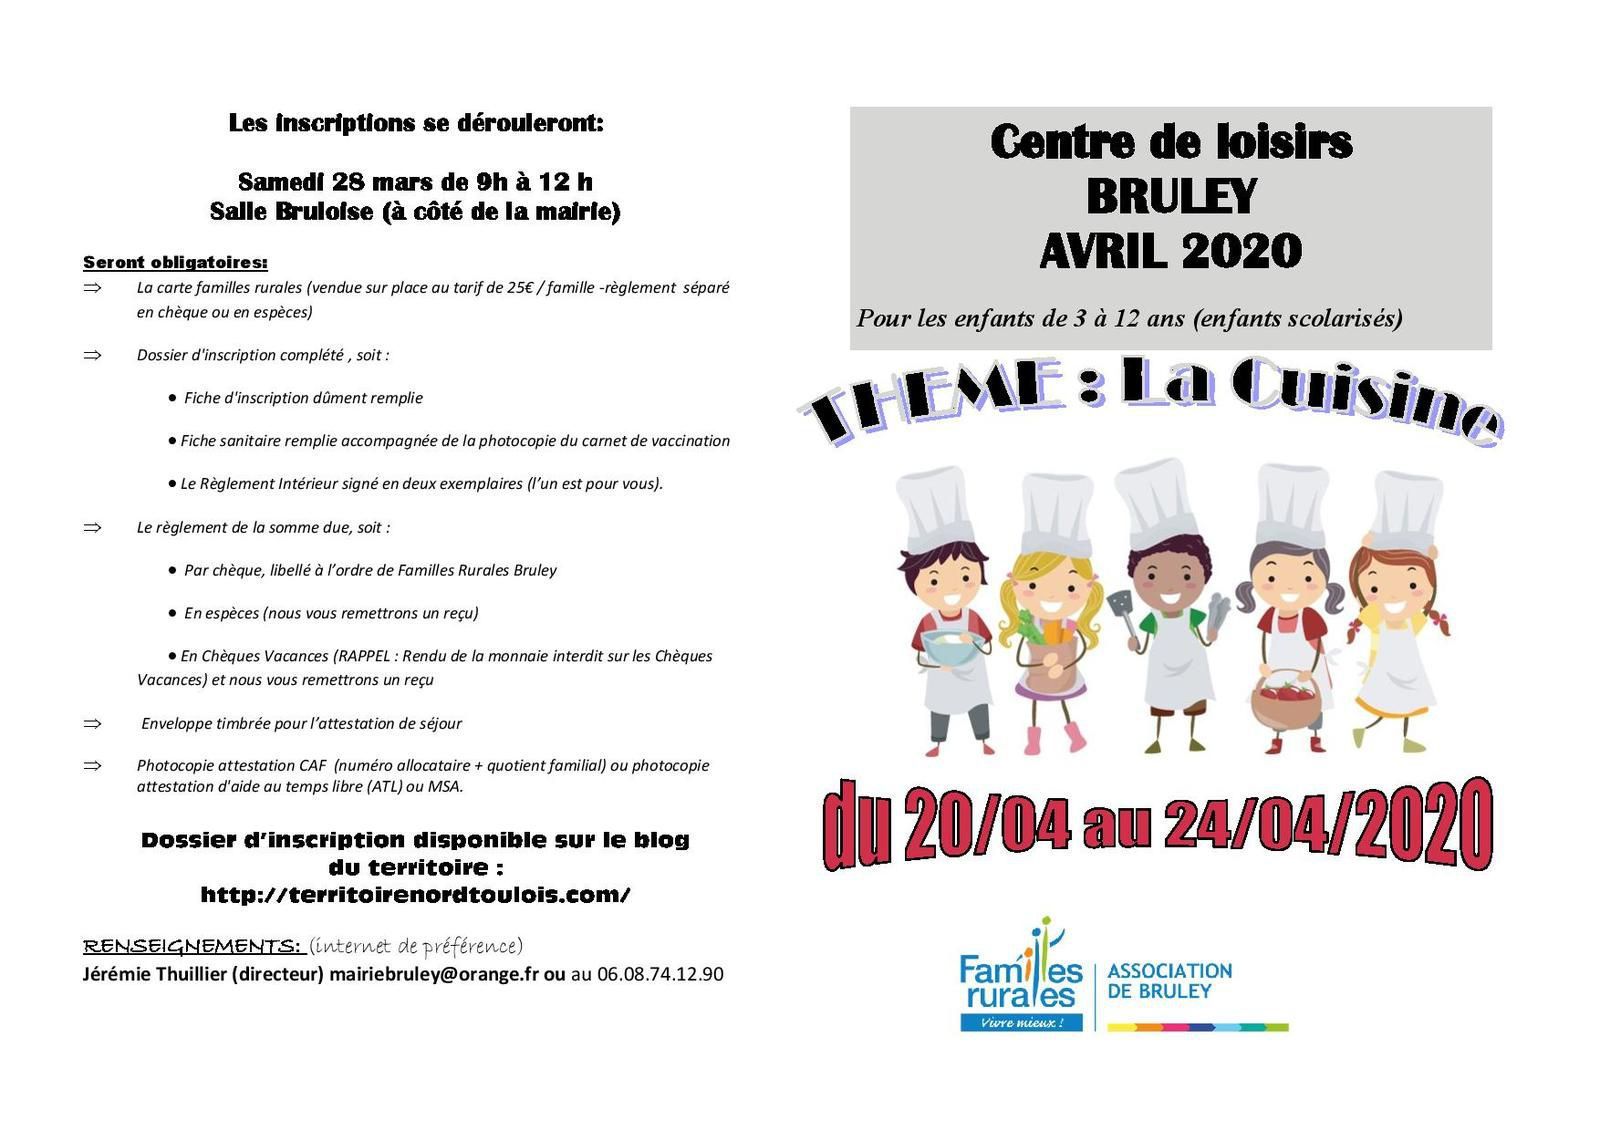 Centre de loisirs Bruley -Avril 2020